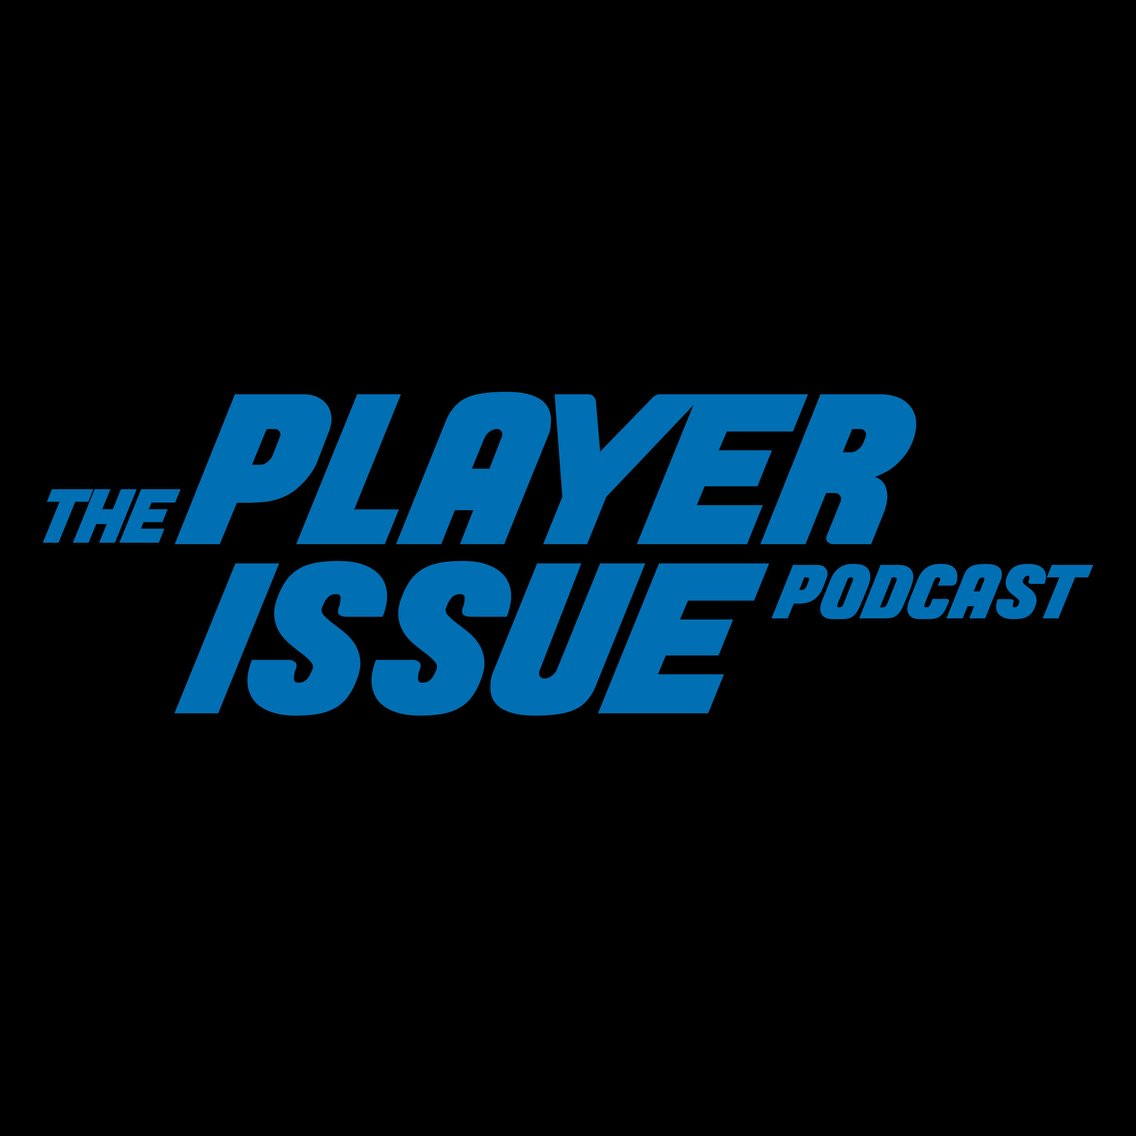 The Player Issue Podcast - Cover Image